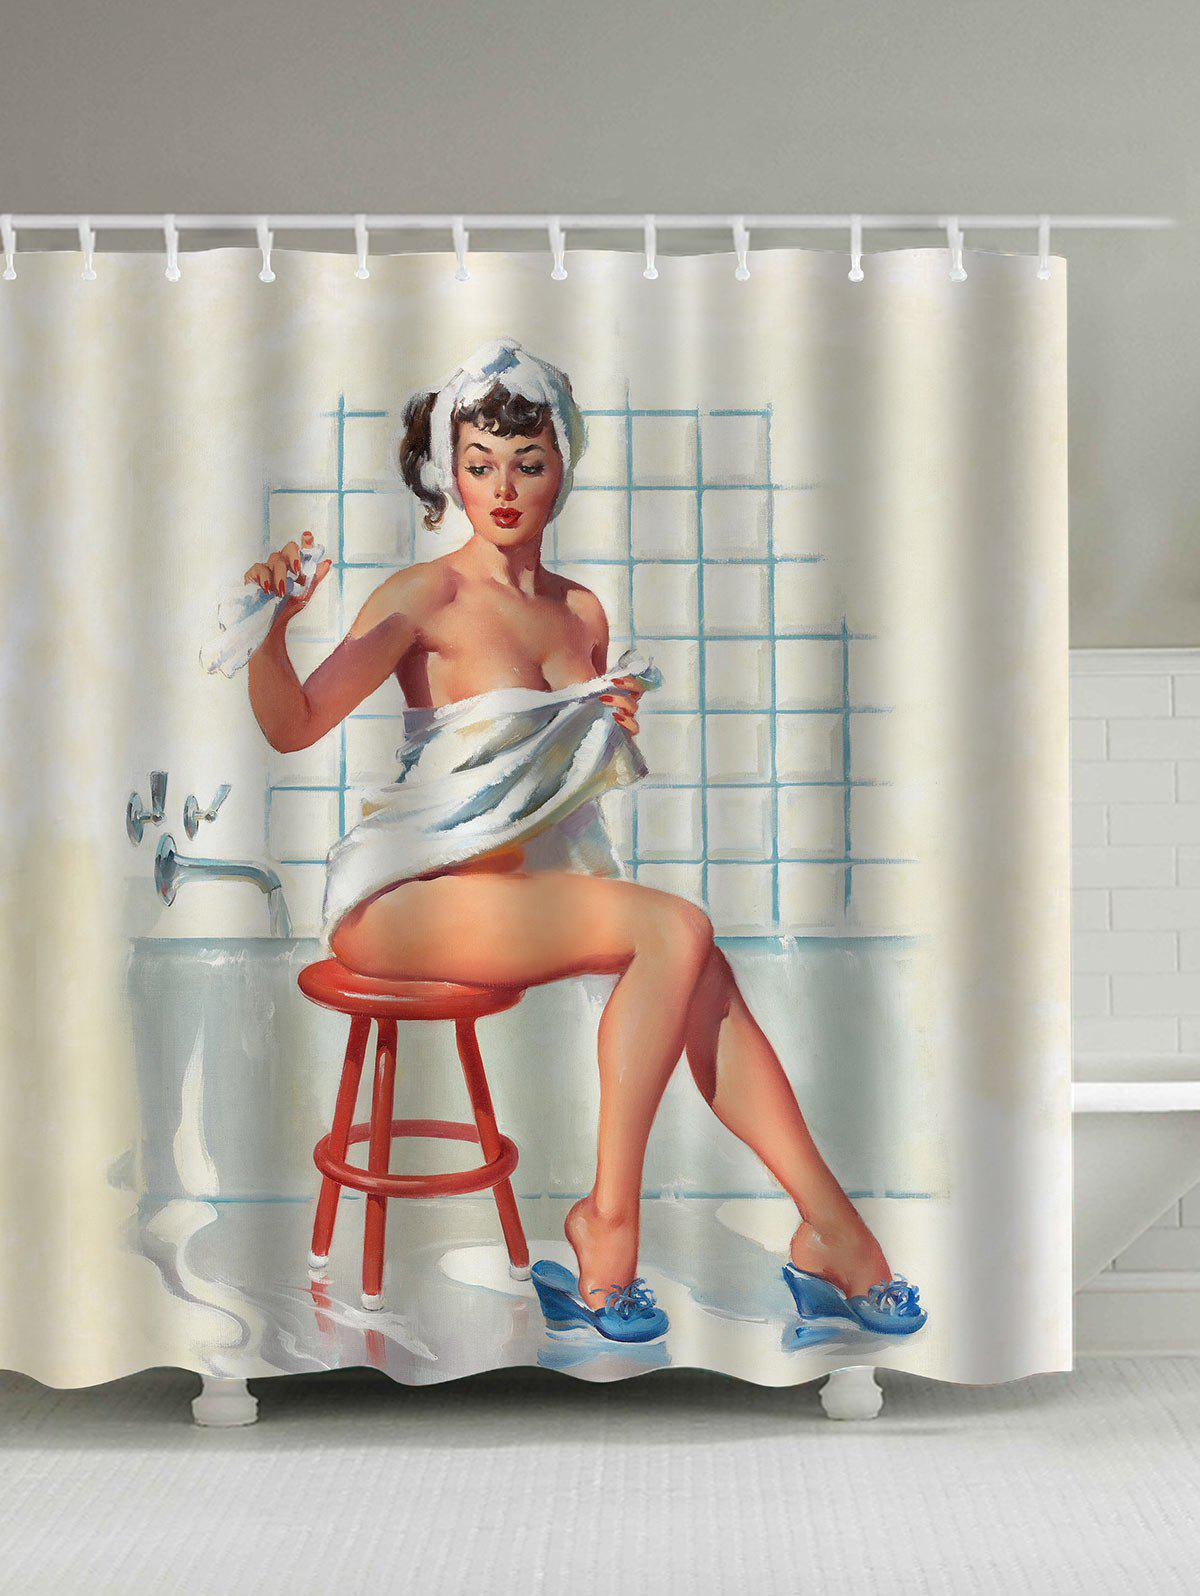 Vintage Shower Girl Print Waterproof Shower CurtainHOME<br><br>Size: 180*180CM; Color: COLORMIX; Products Type: Shower Curtains; Materials: Polyester; Style: Vintage; Number of Hook Holes: W59inch*L71inch: 10;  W71inch*L71inch: 12;  W71inch*L79inch: 12.; Weight: 0.5400kg; Package Contents: 1 x Shower Curtain 12 x Hooks;